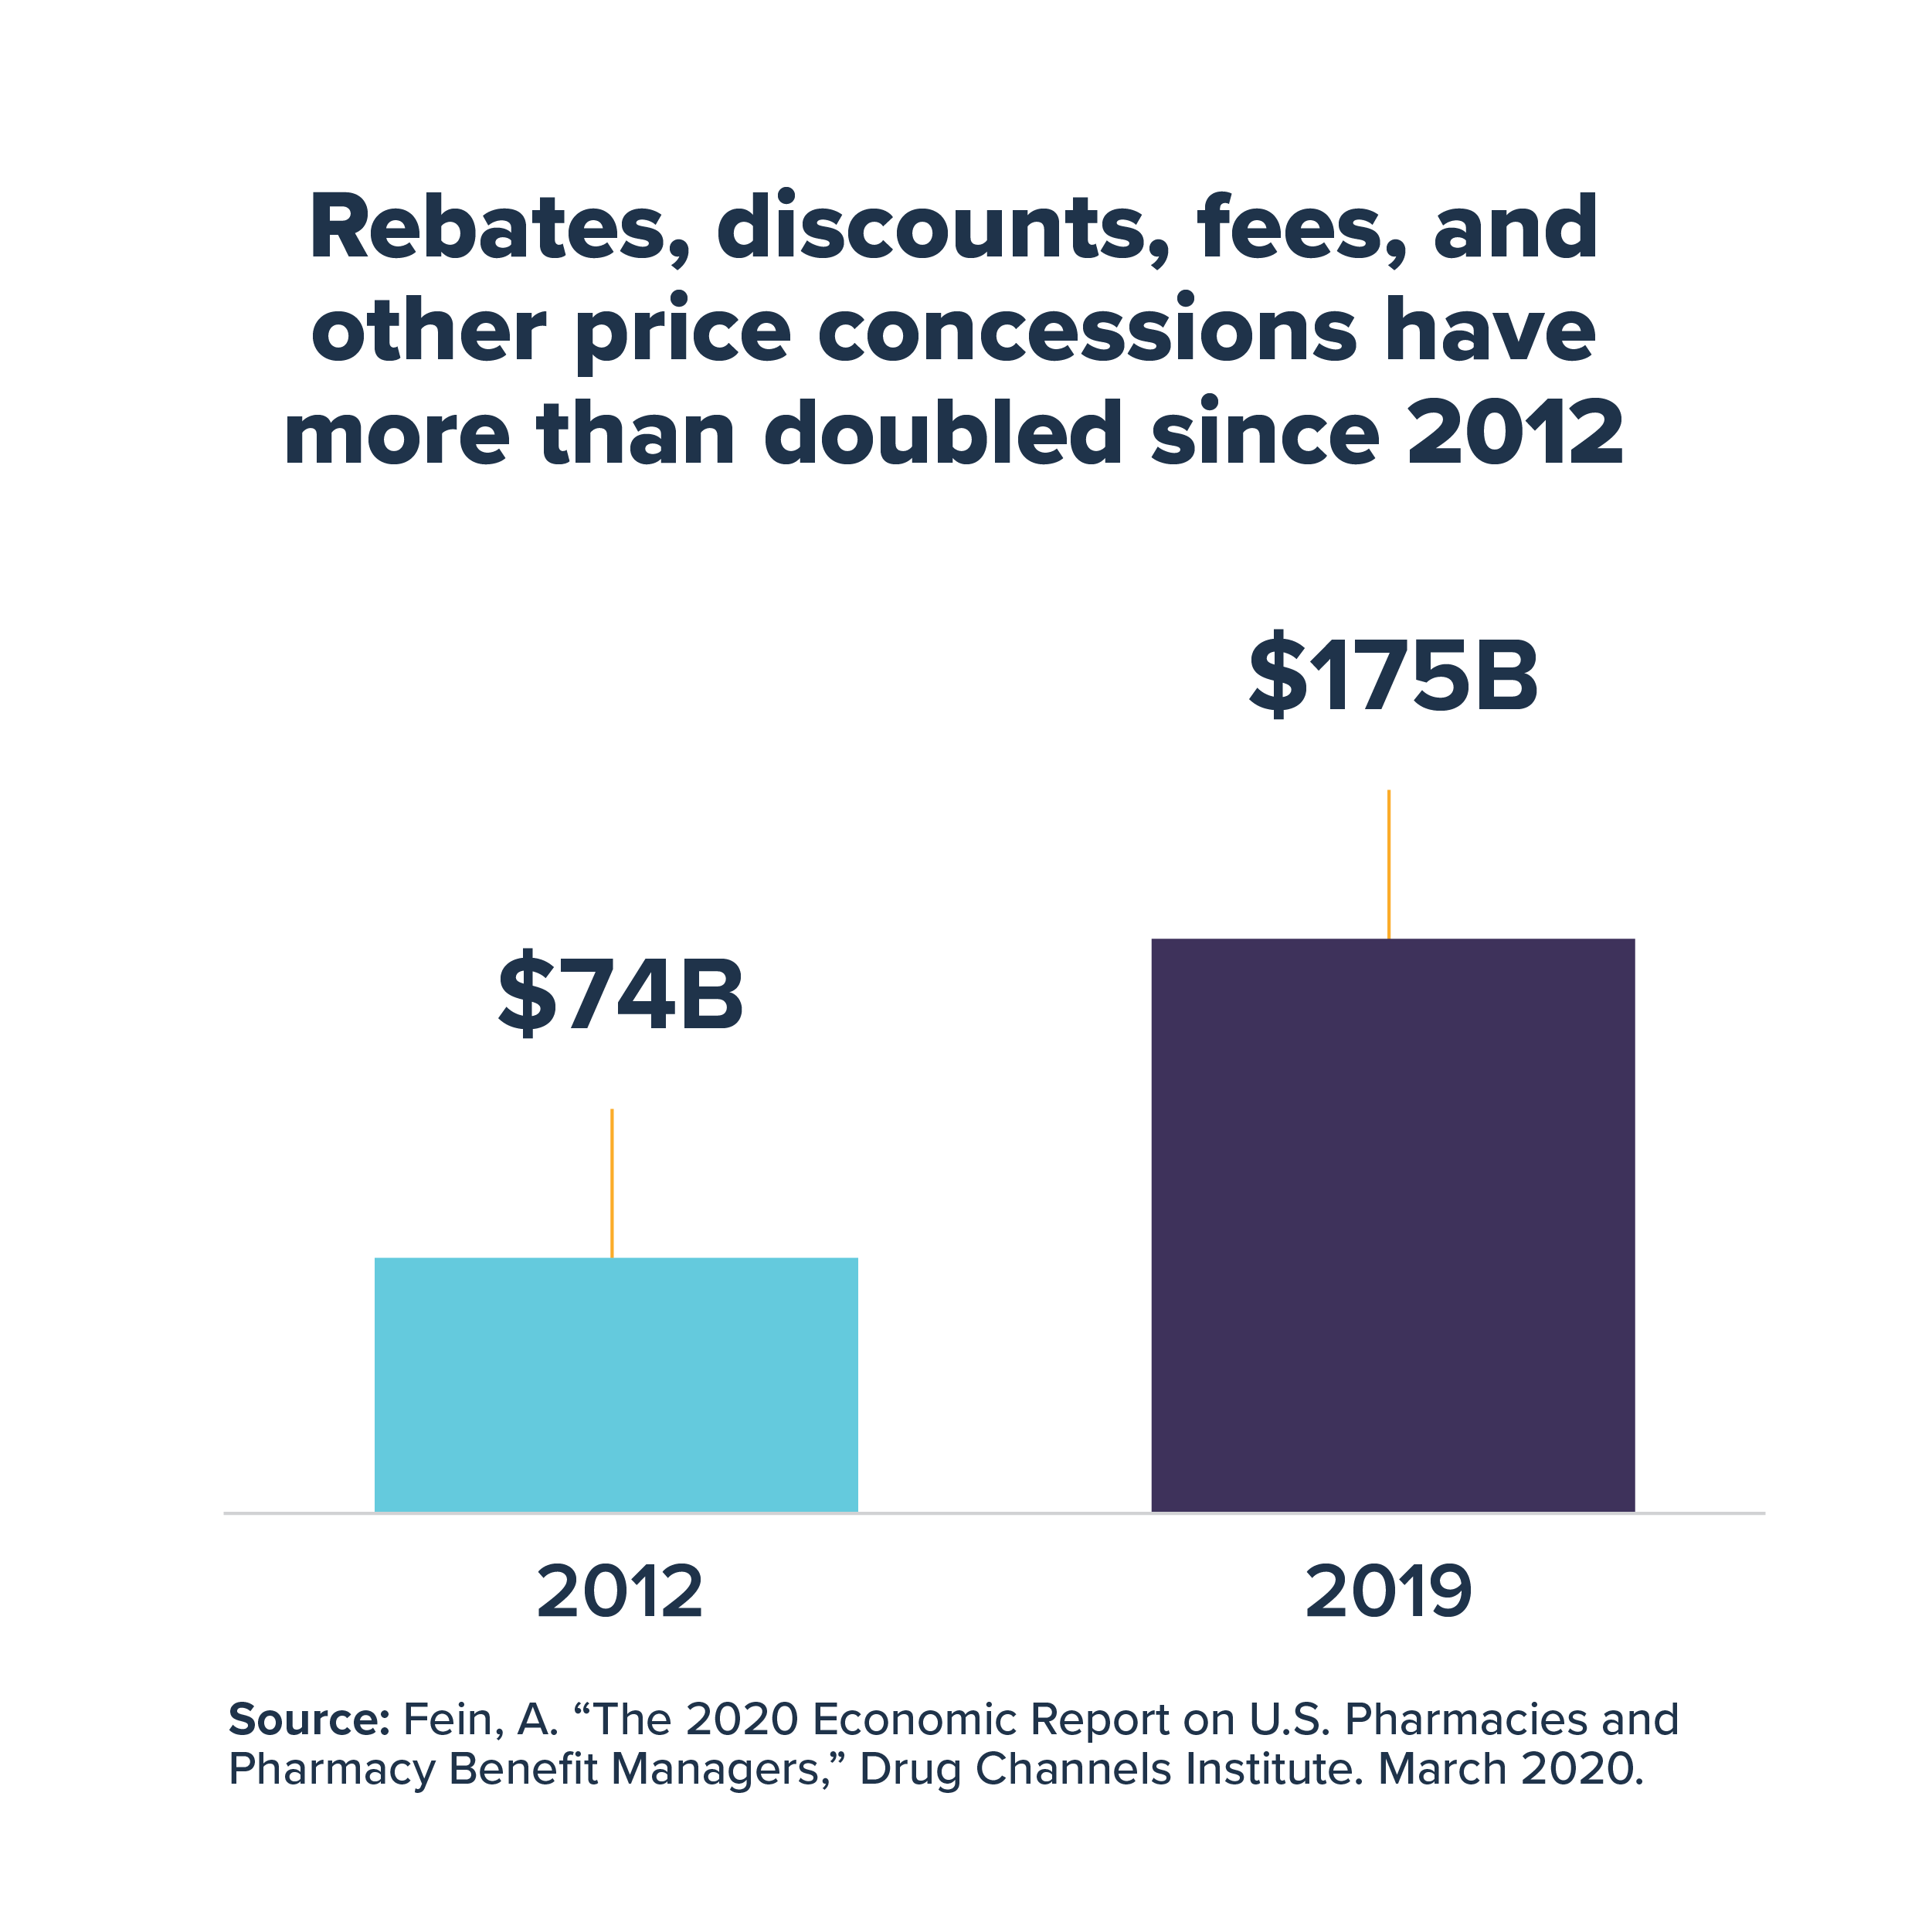 Rebates, discounts, fees and other price concessions have doubled since 2012